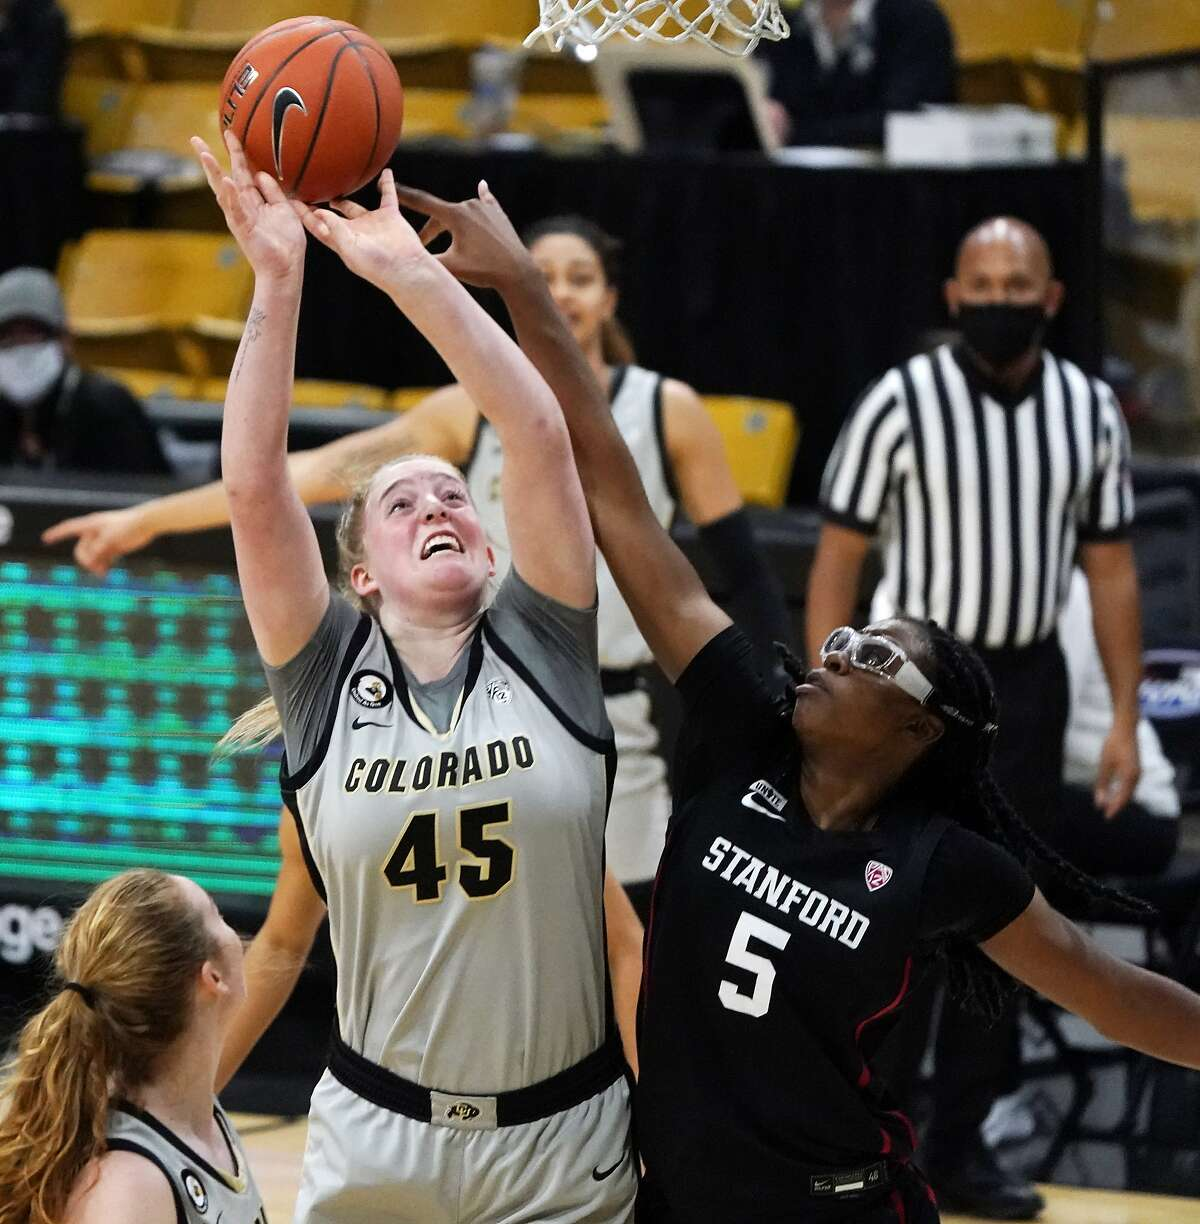 Stanford's Francesca Belibi (5) blocks a shot by Colorado's Charlotte Whittaker in the first half in Boulder, Colo.